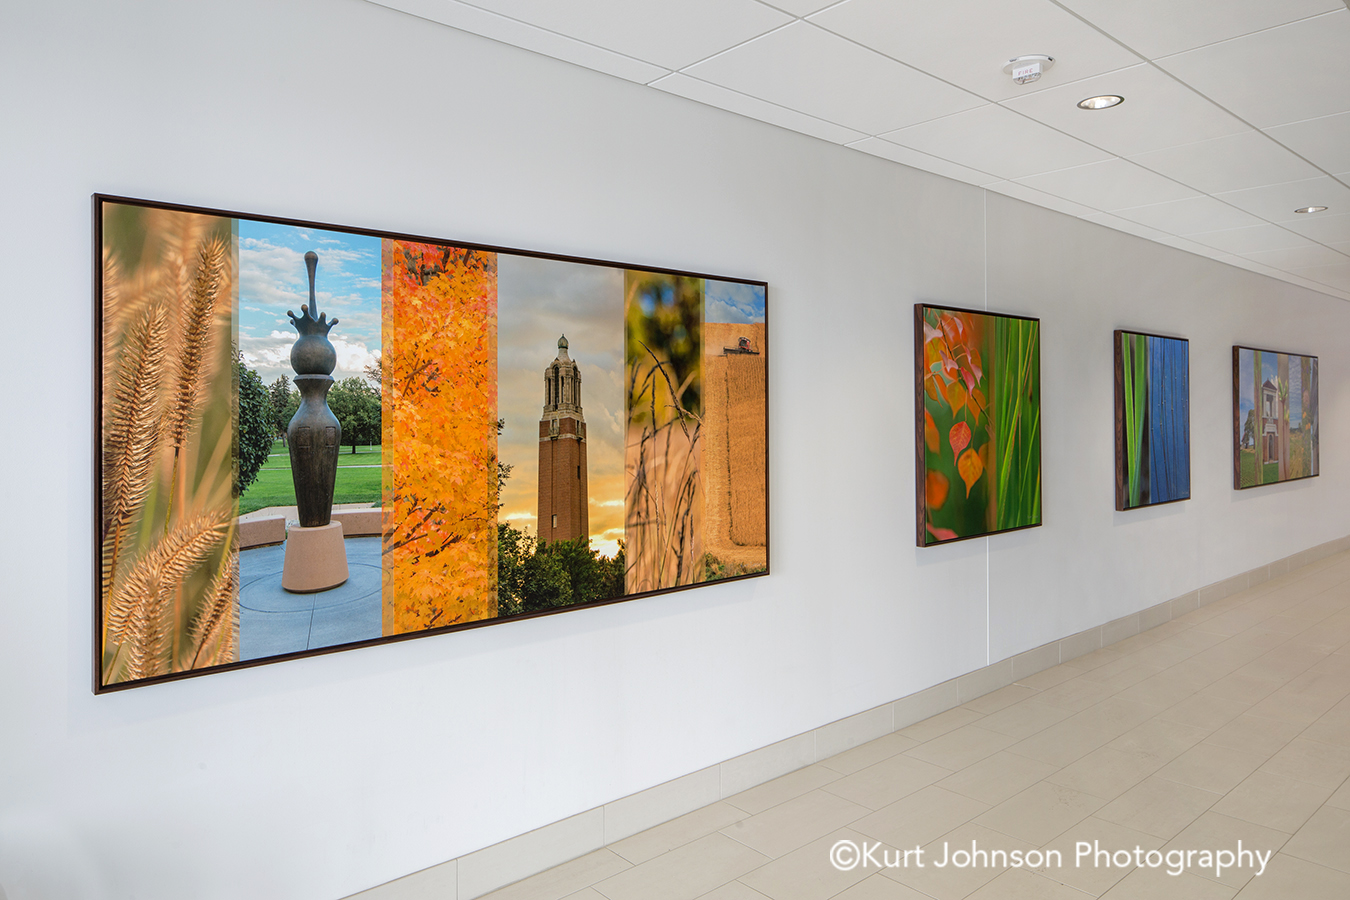 Brooking SD healthcare installation install gallery wrapped framed canvas midwest botanicals custom imagery